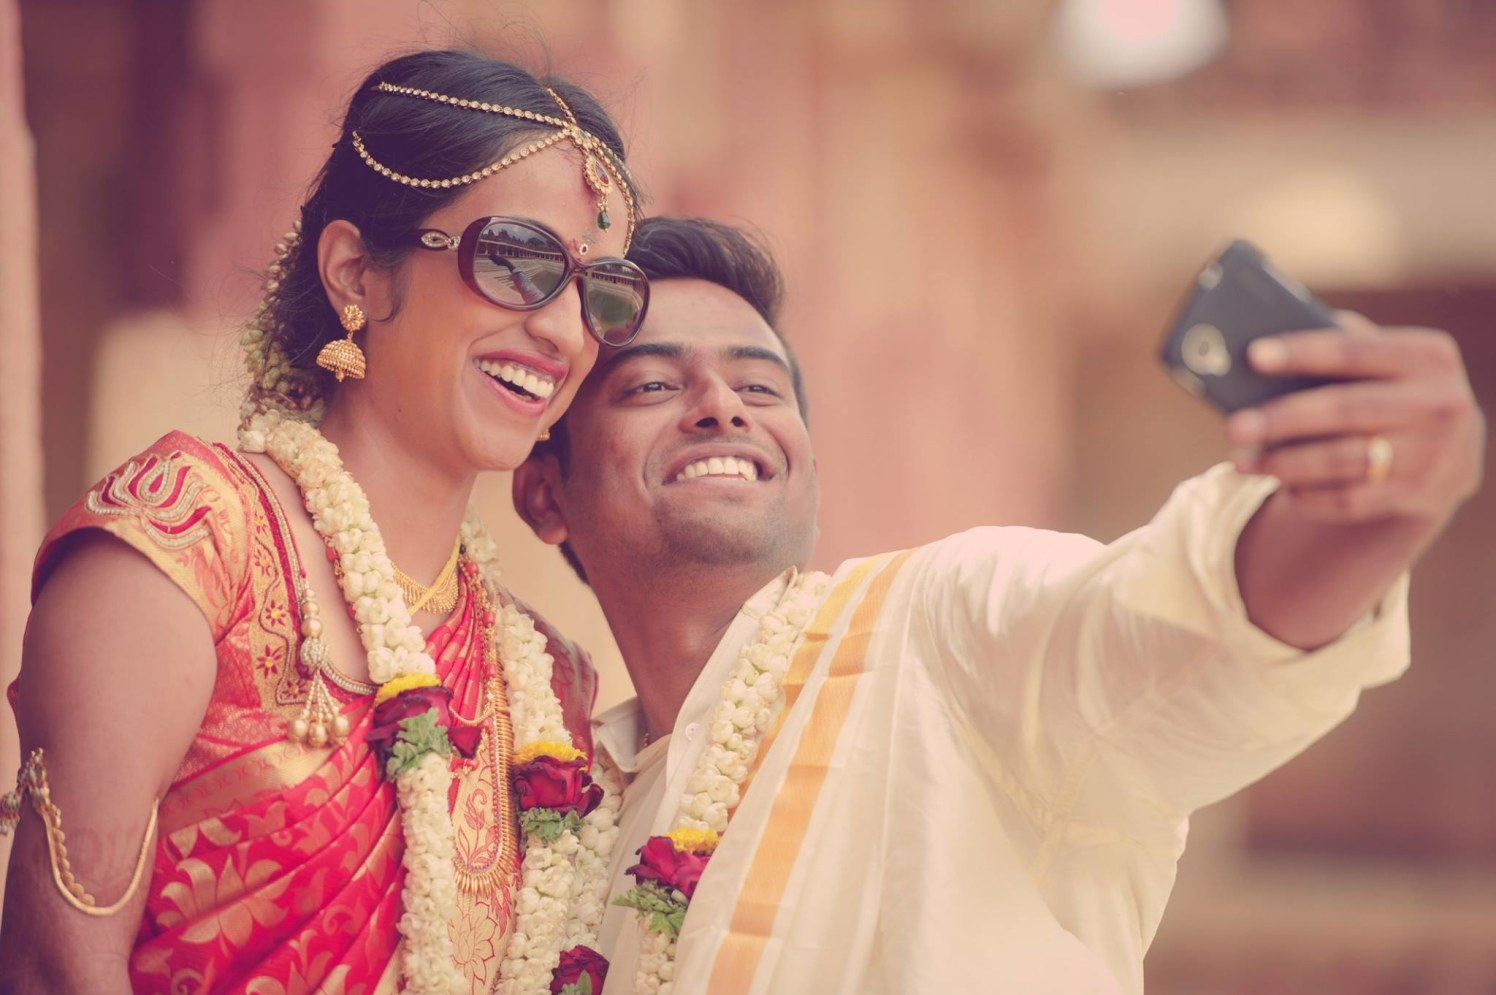 Bride And Groom Clicking Selfies On Their Wedding Day by Dushyantha Kumar C Wedding-photography | Weddings Photos & Ideas